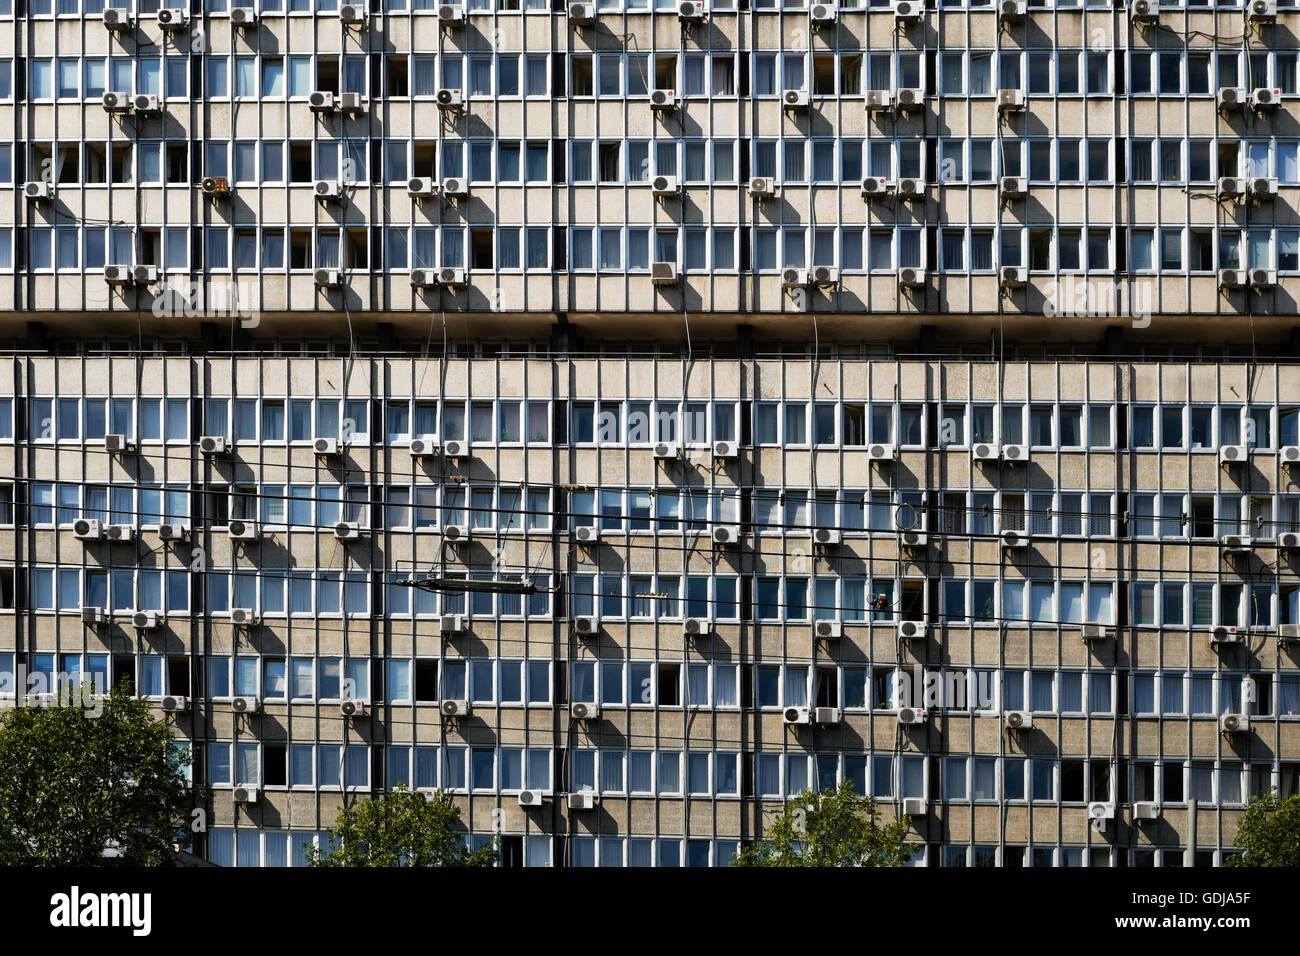 High rise public building exterior  with air conditioning units in Belgrade Serbia - Stock Image